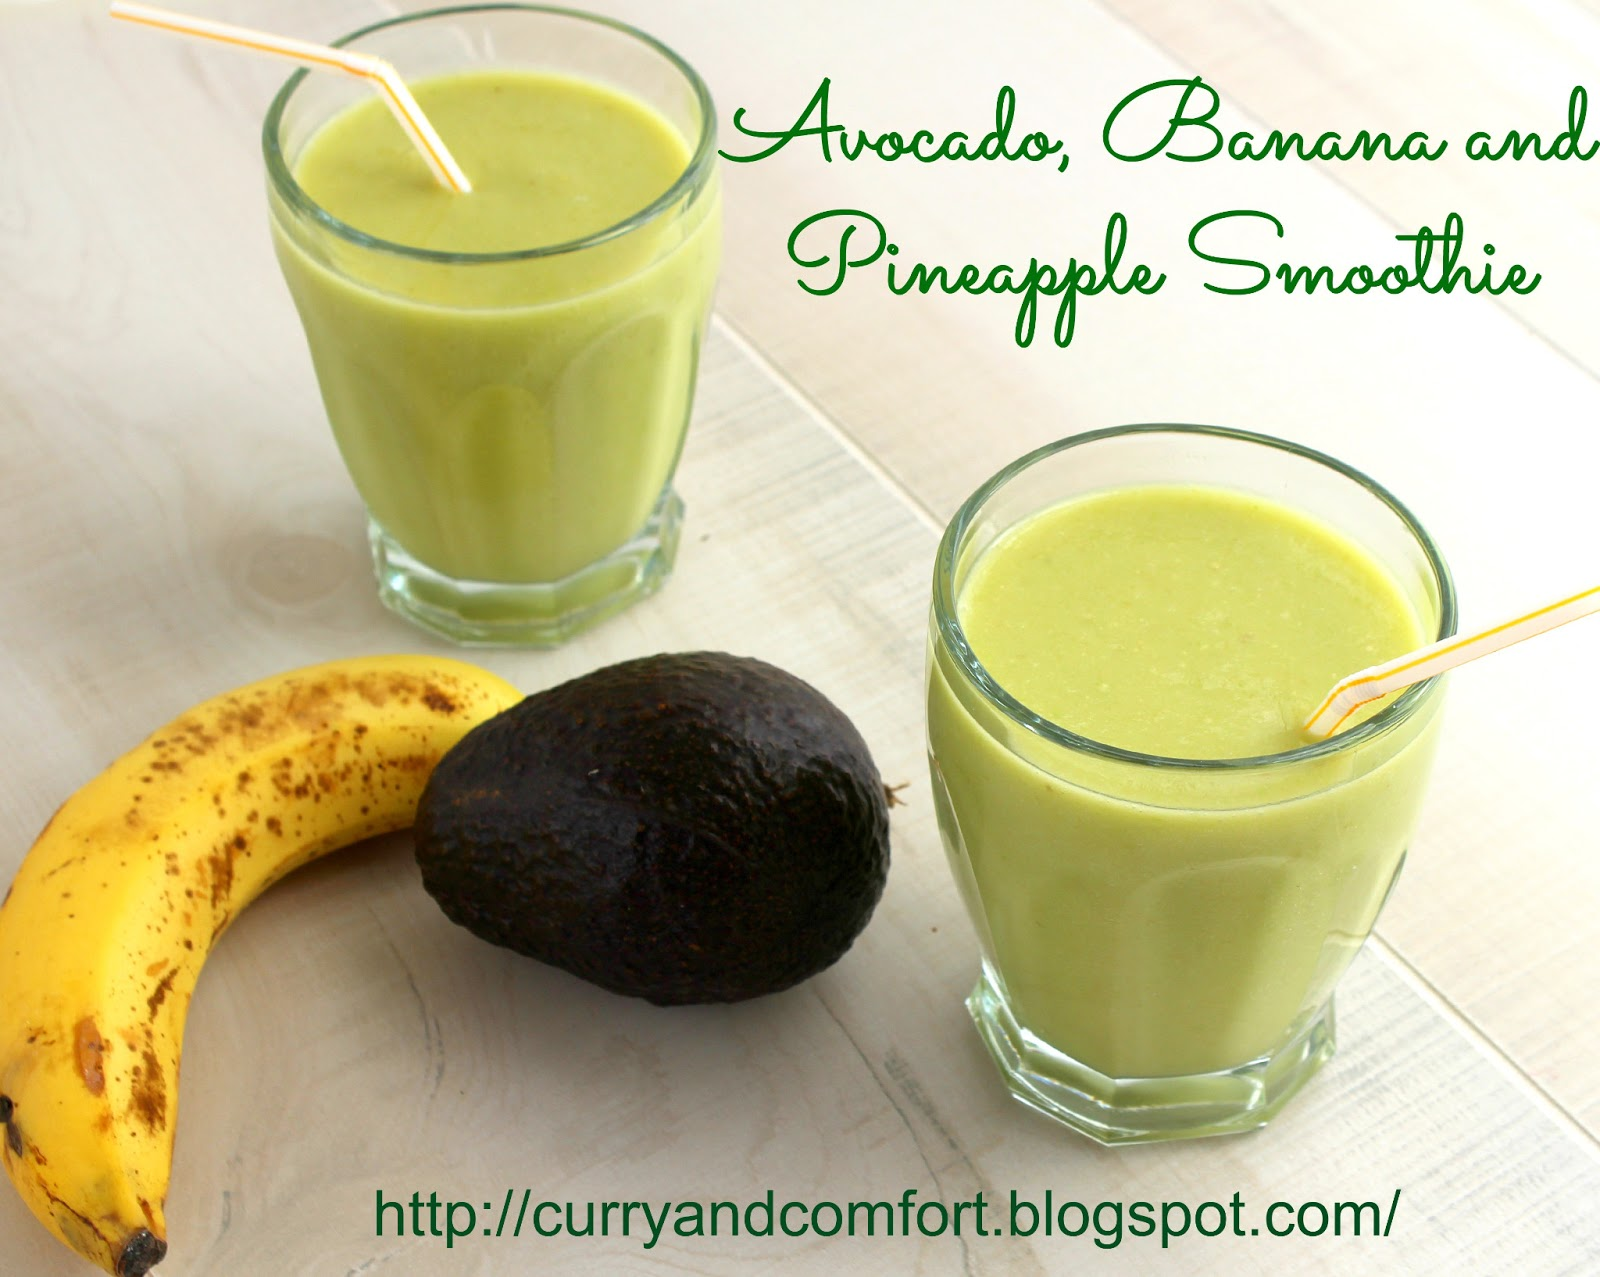 Kitchen Simmer: Avocado, Banana and Pineapple Smoothie (Vegan)